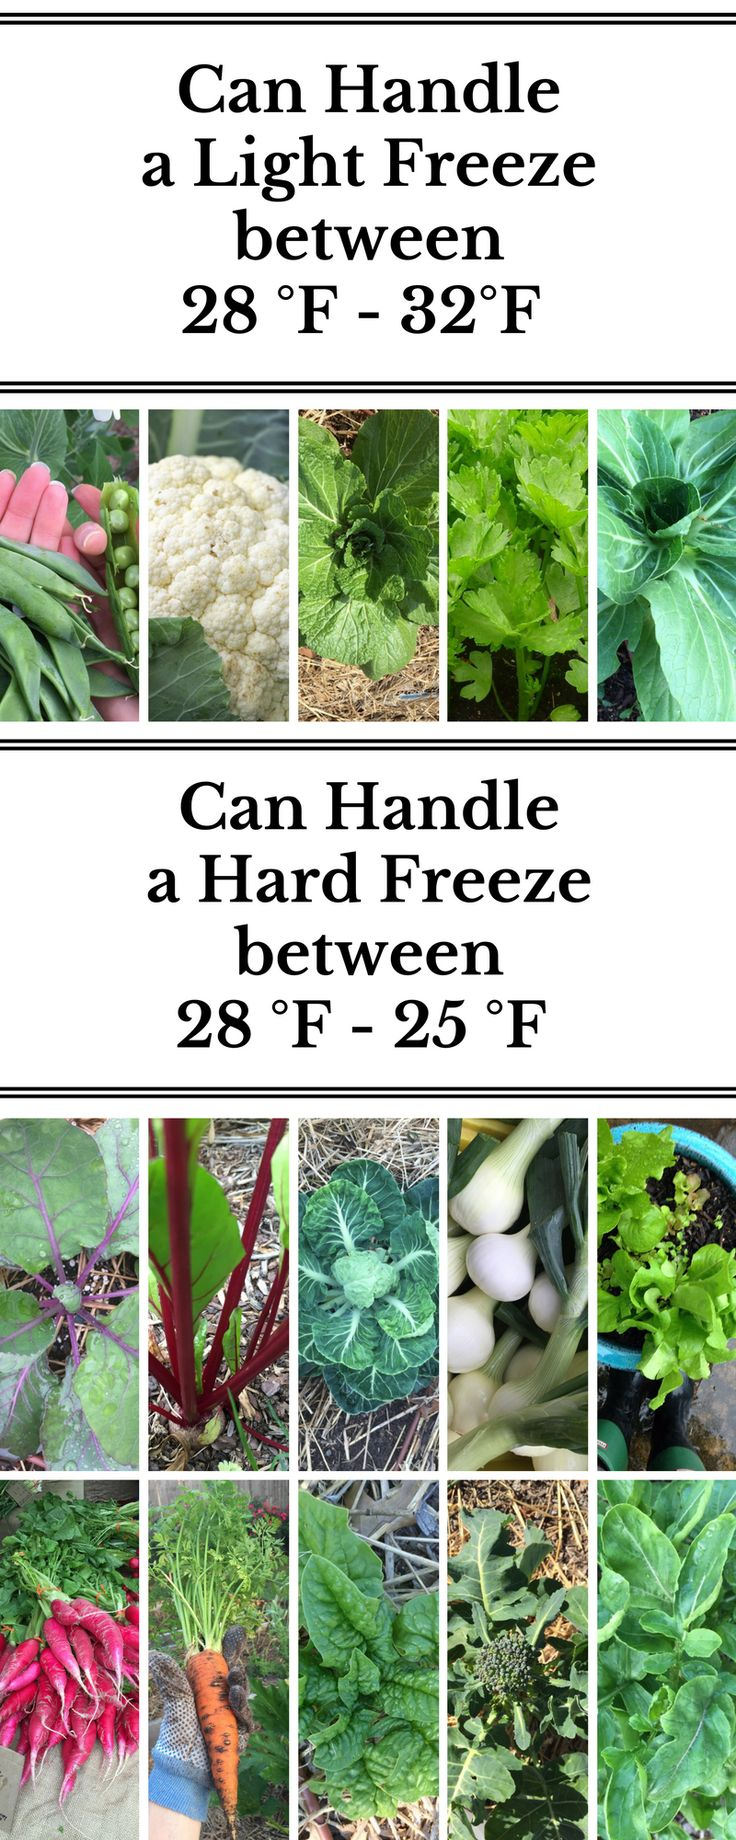 Before deciding on which plants to grow, you need to know which are warm season and cool season plants. Growing in the winter means you need to take it a step further and learn about frost tolerance in cool season crops. Here's an article that breaks it down, helping you decide what to grow when!